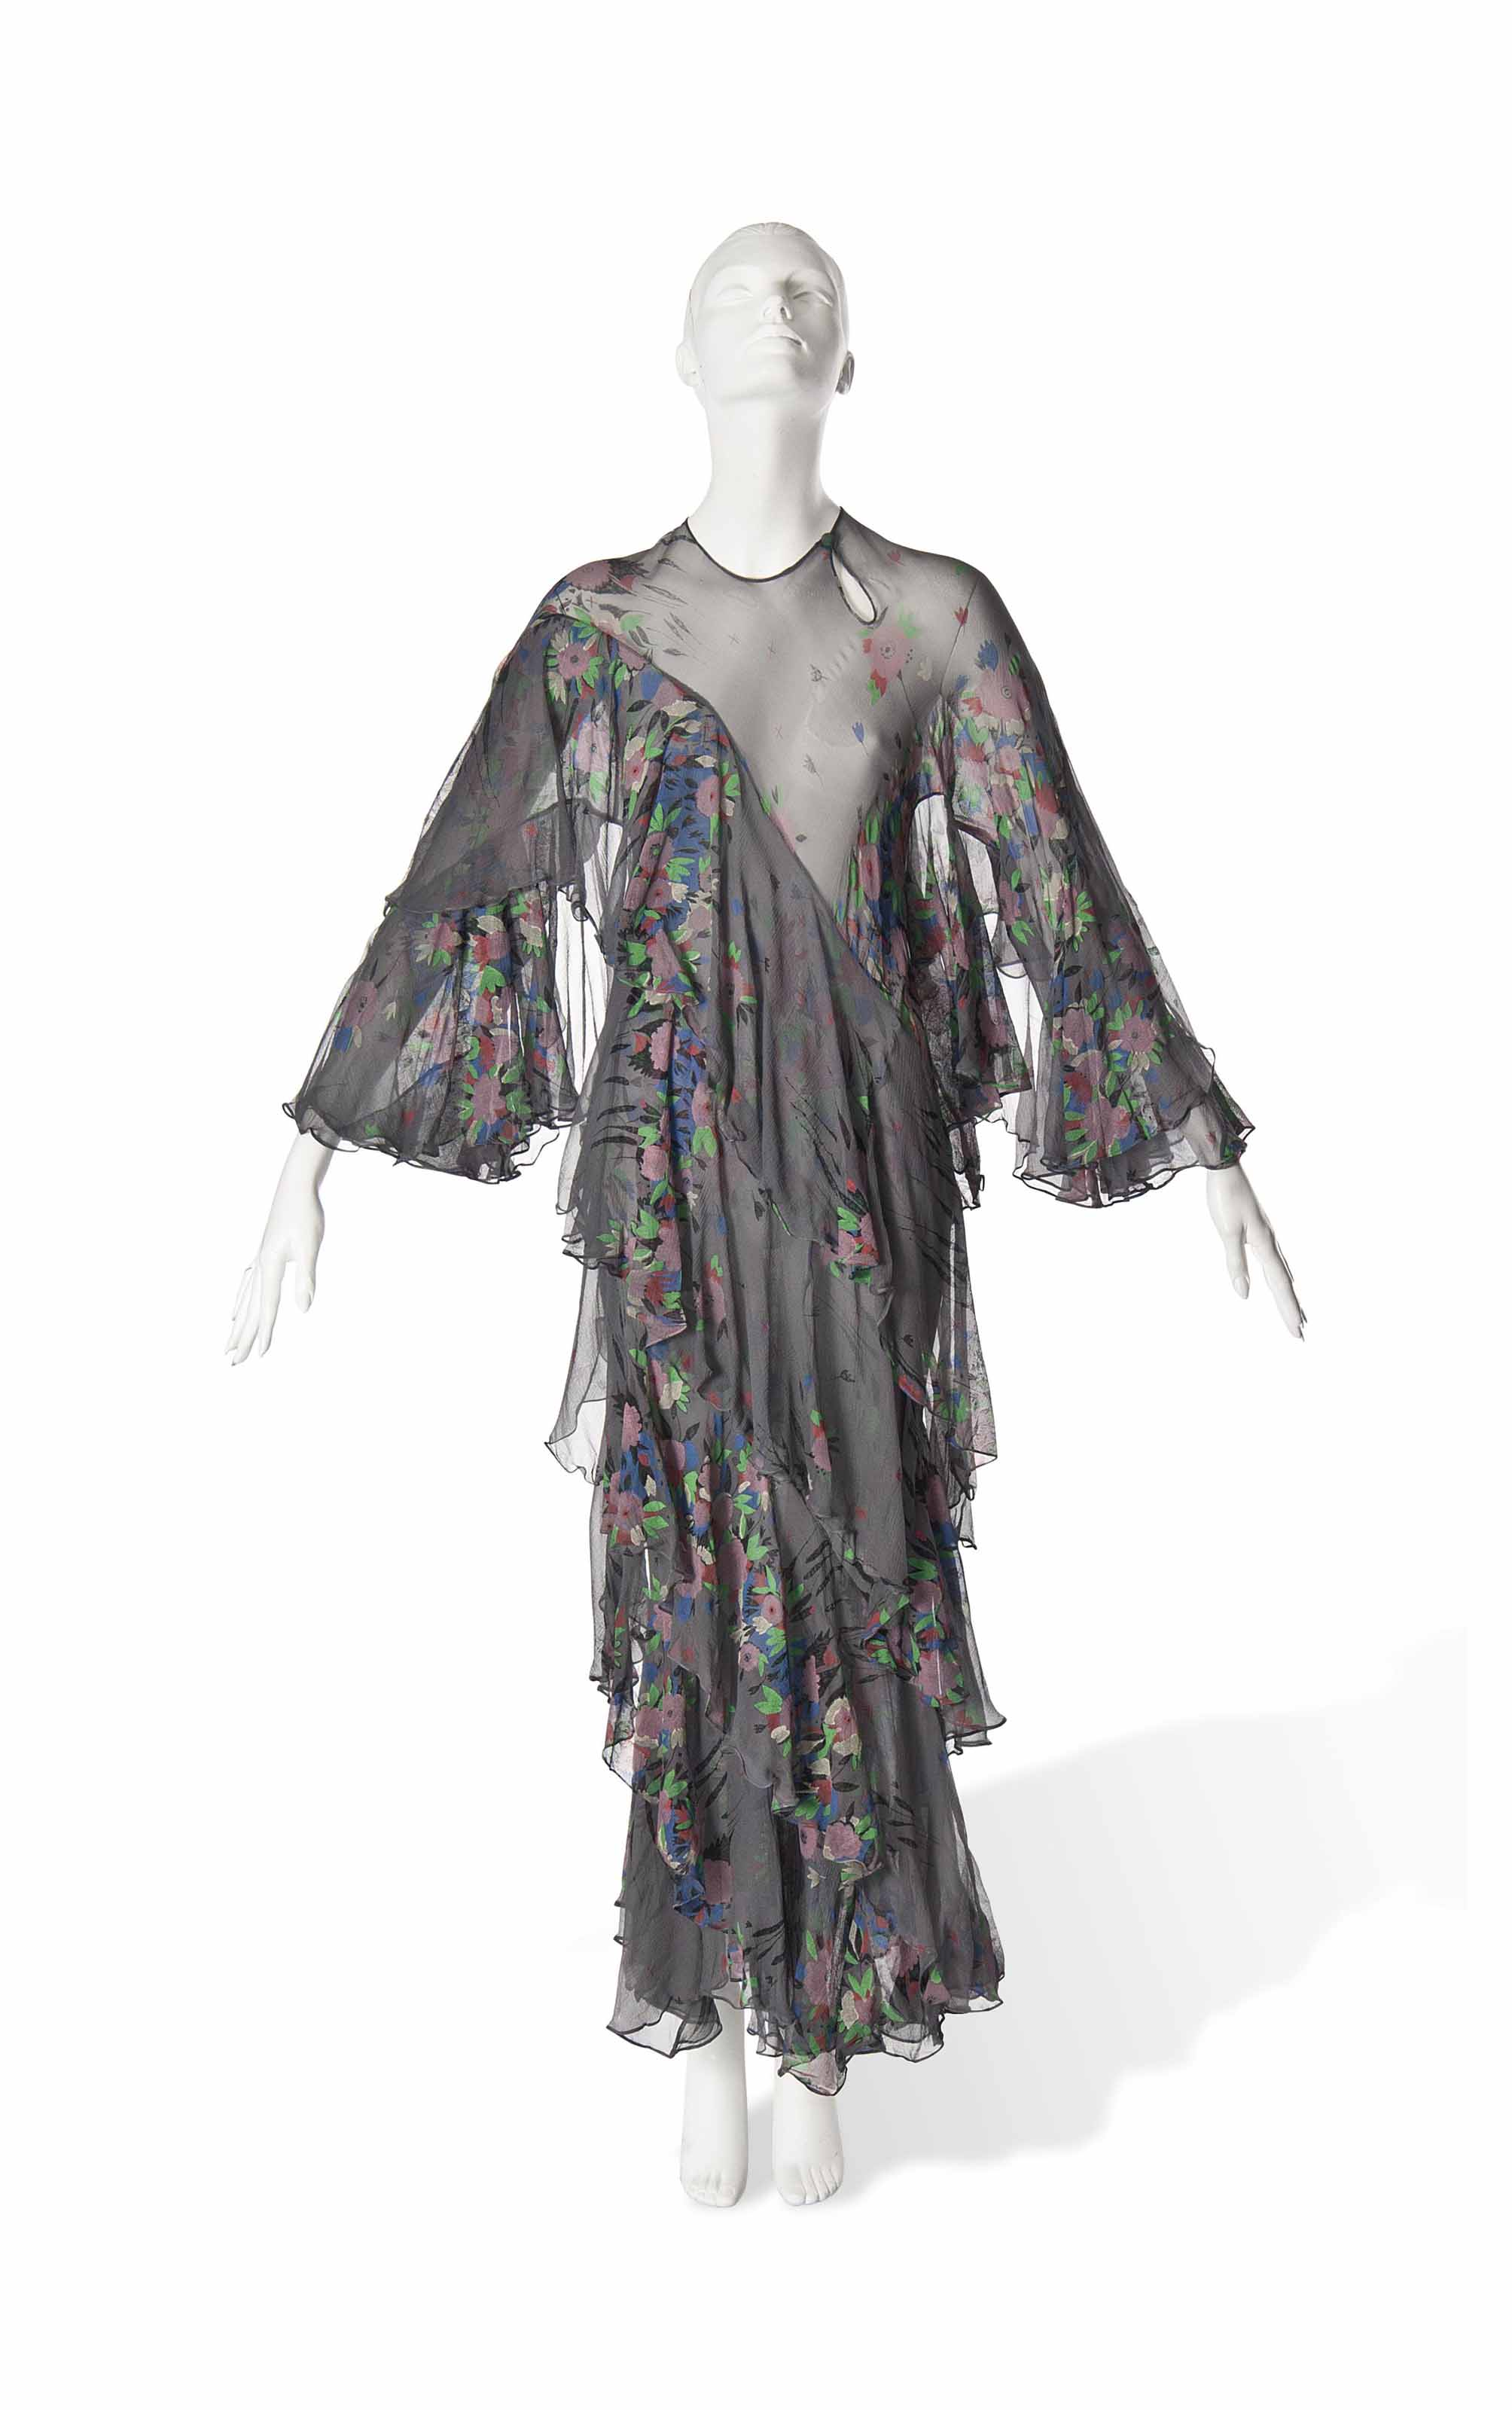 AN OSSIE CLARK AND CELIA BIRTWELL FOR QUORUM, BLACK SILK PRINTED CHIFFON DRESS